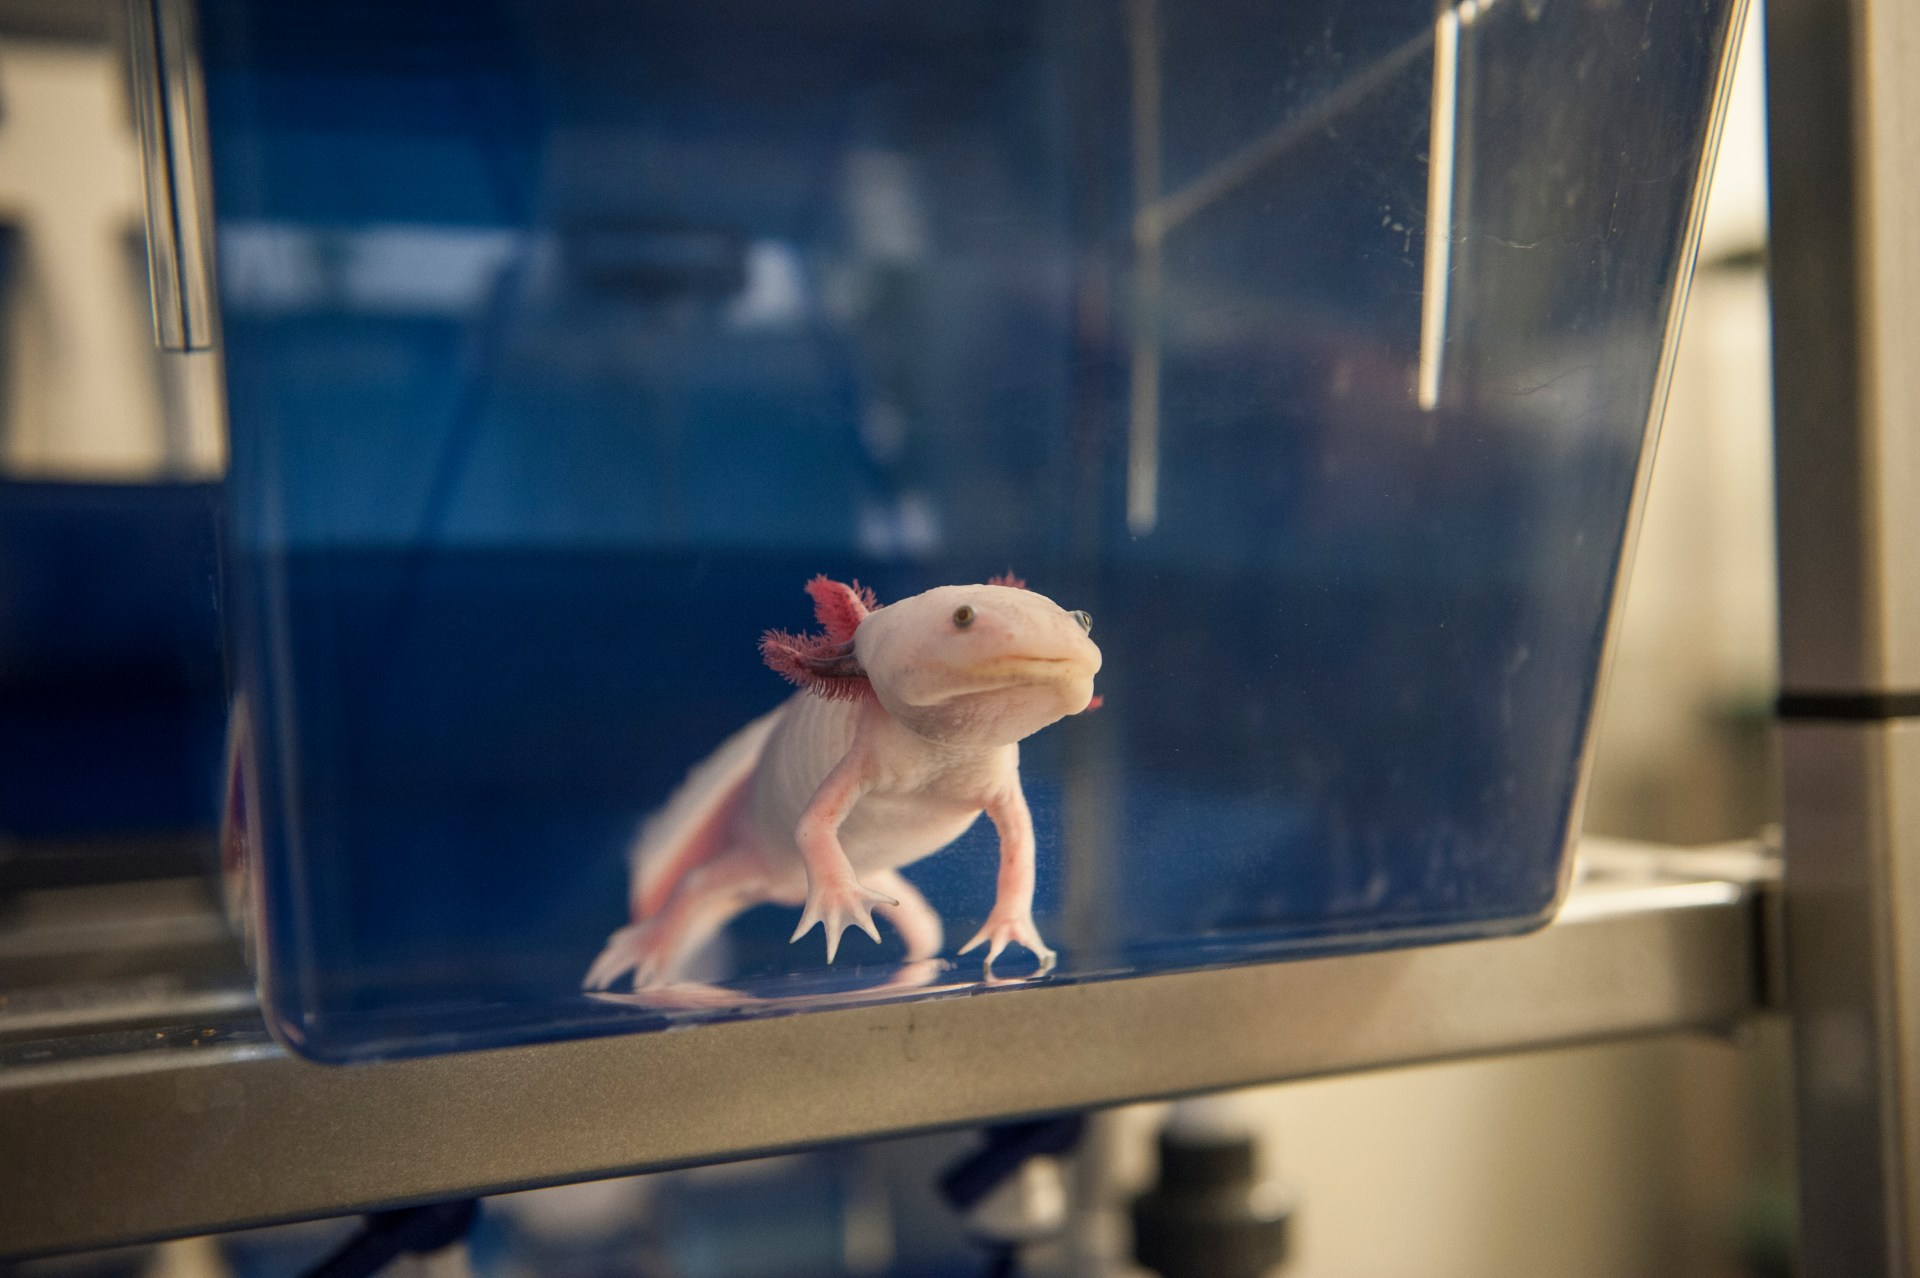 An axolotl looks out at the camera and swims in a tank.